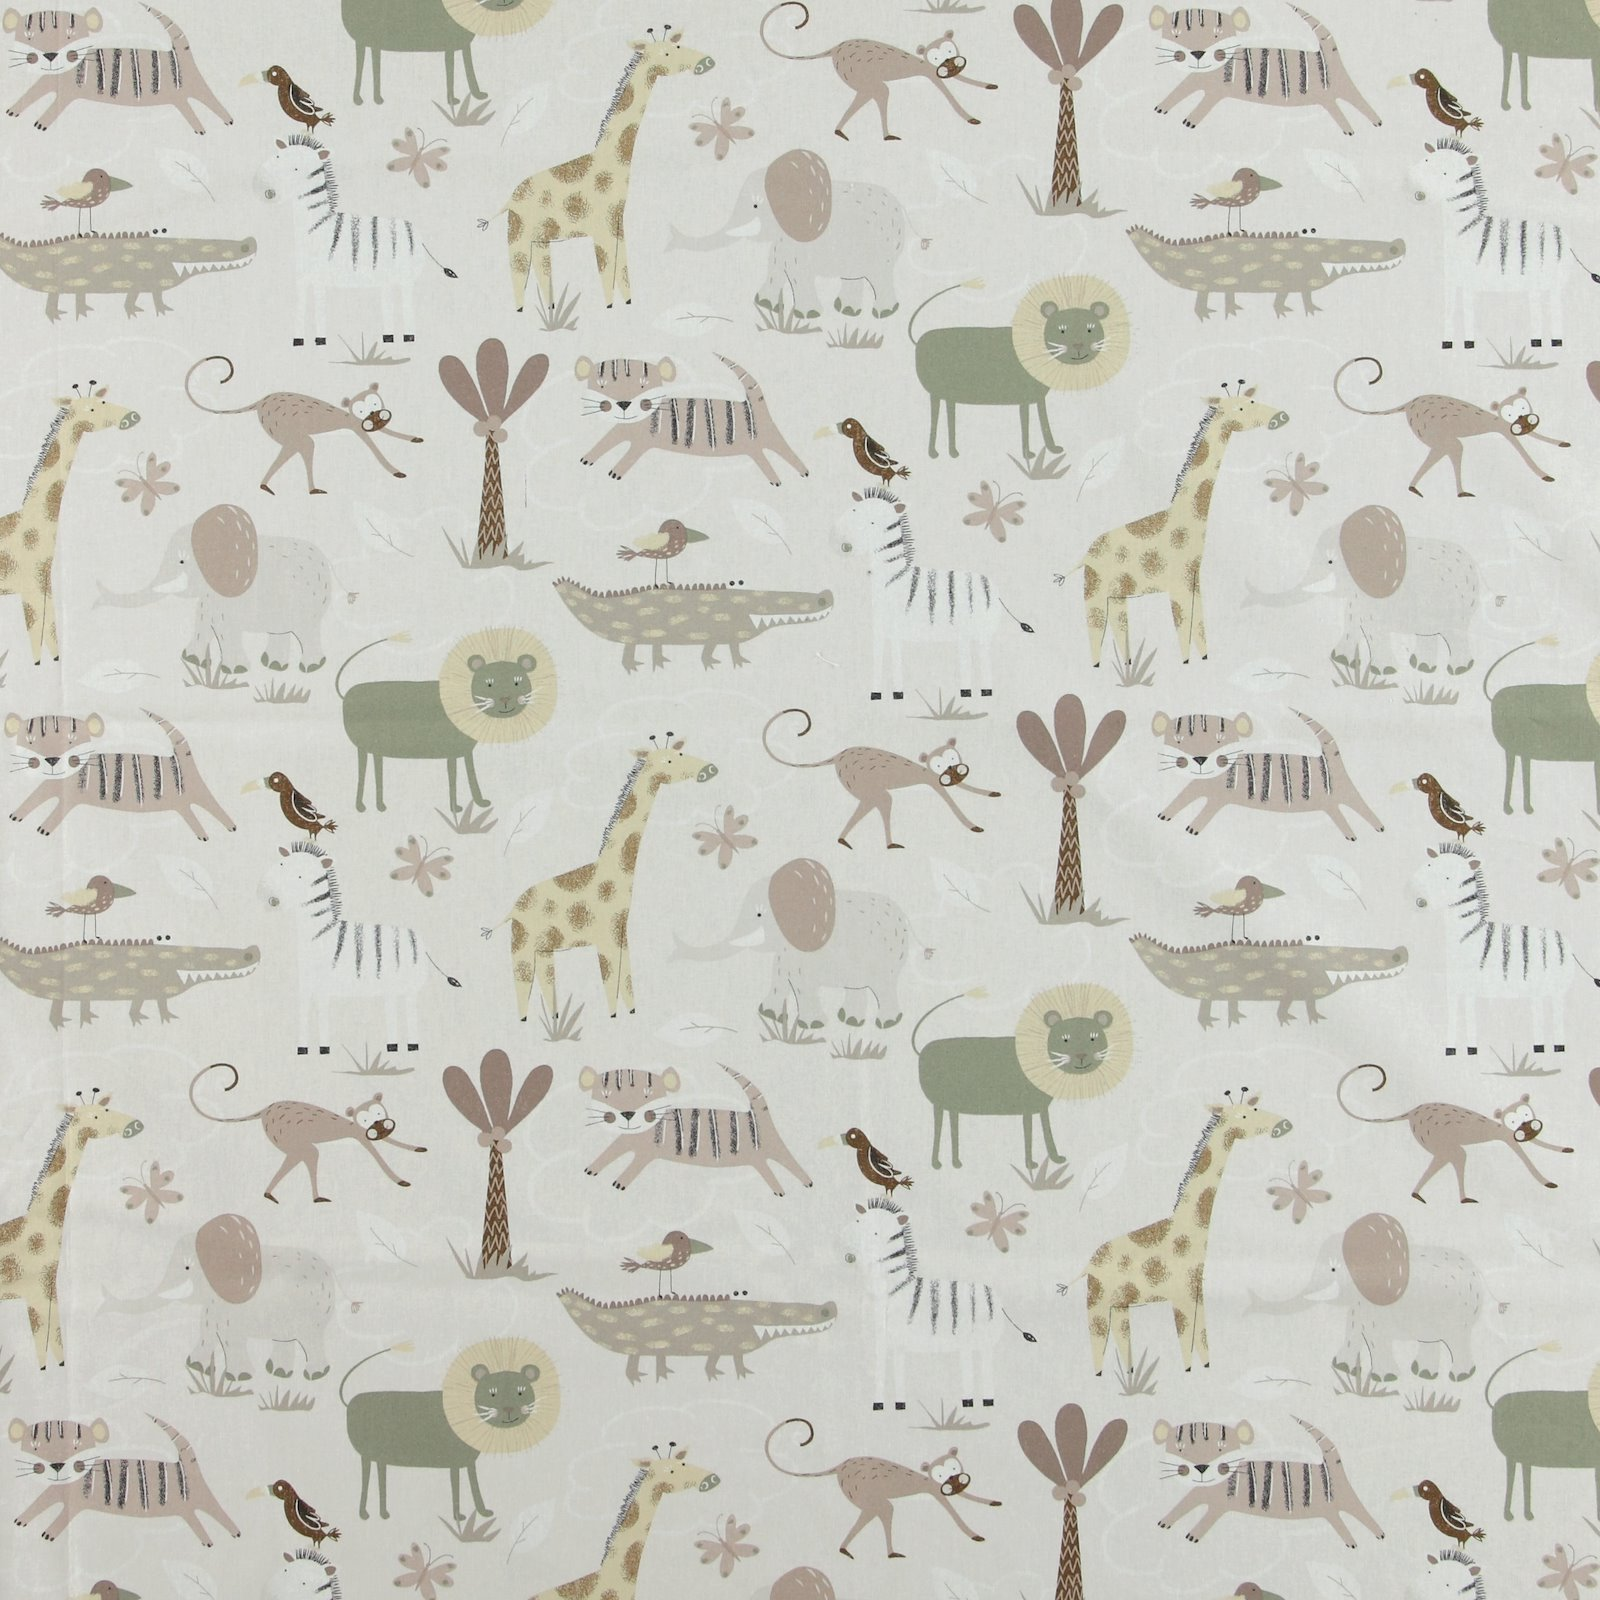 Cotton nature w animal from the jungle 780078_pack_sp